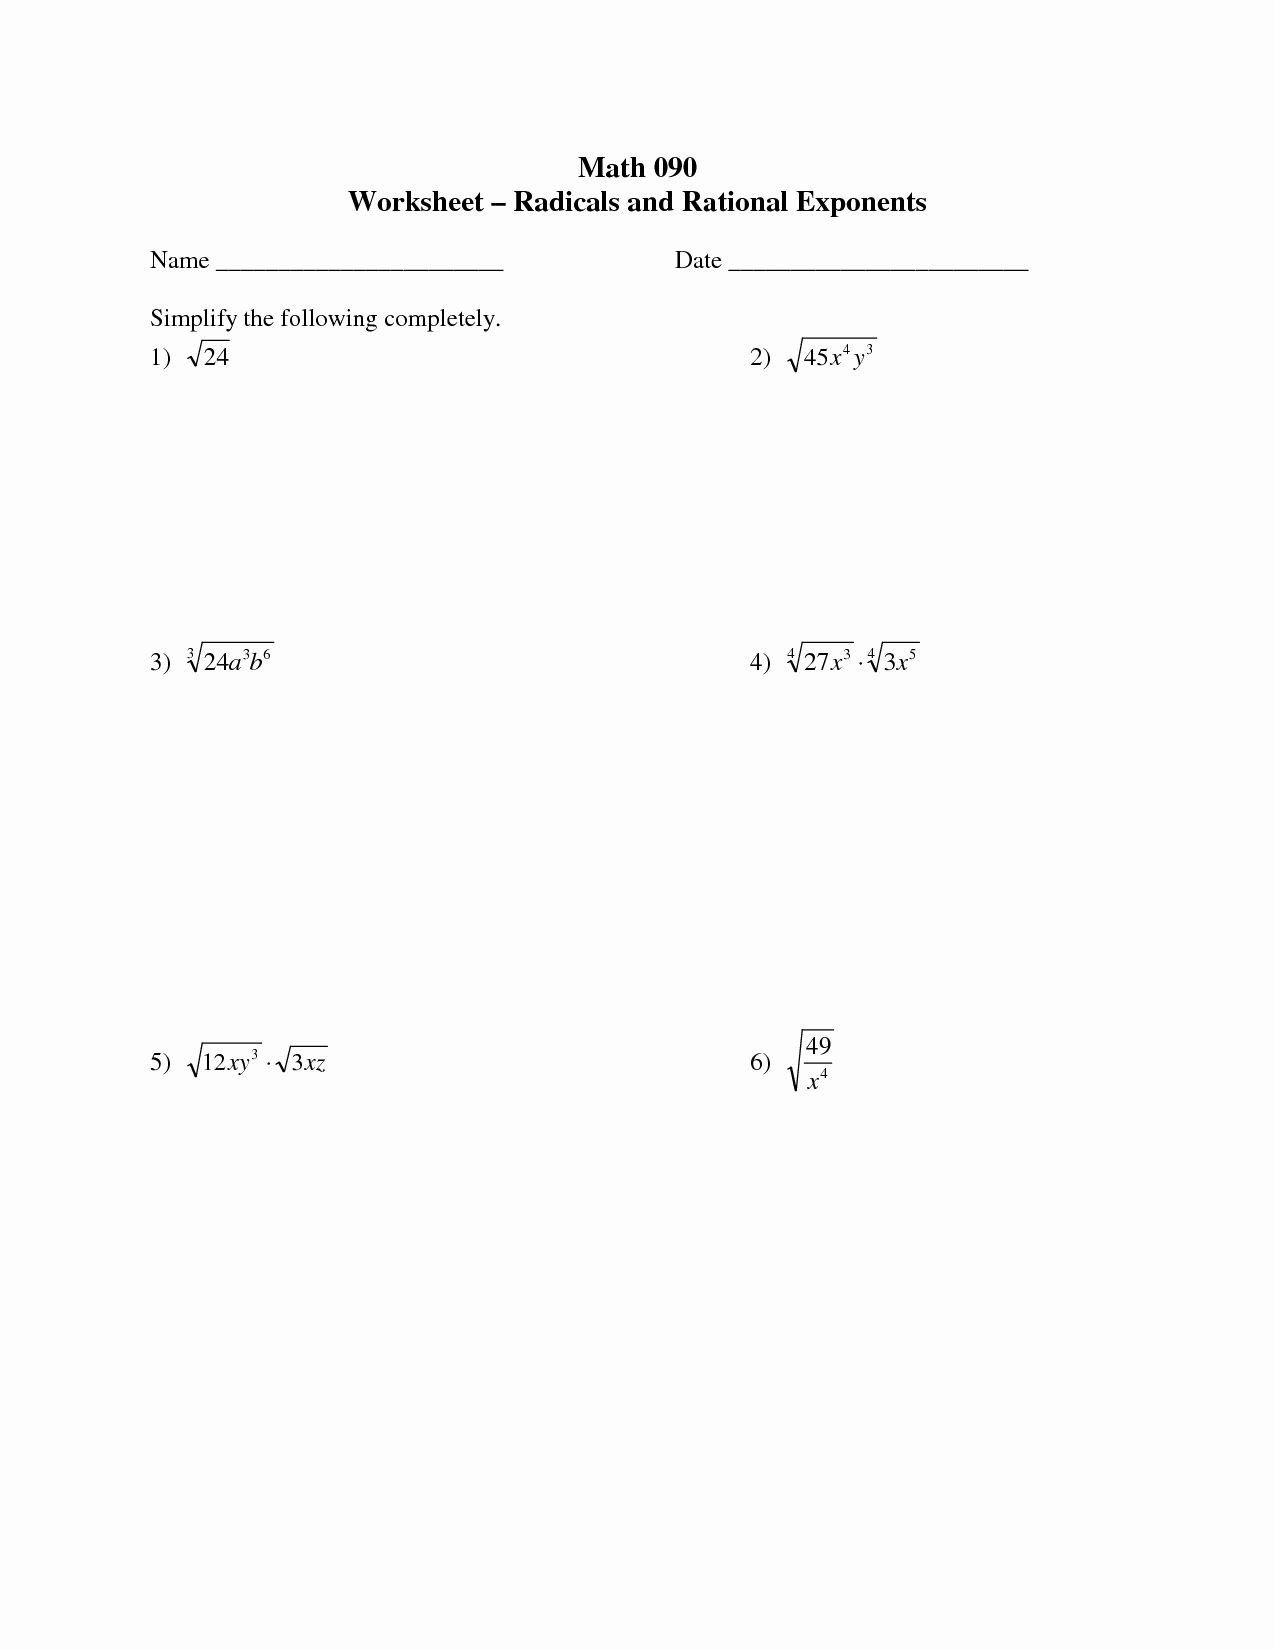 Radicals And Rational Exponents Worksheet 50 Radical And Rational Exponents Worksheet In 2020 Exponent Worksheets Exponents Worksheets